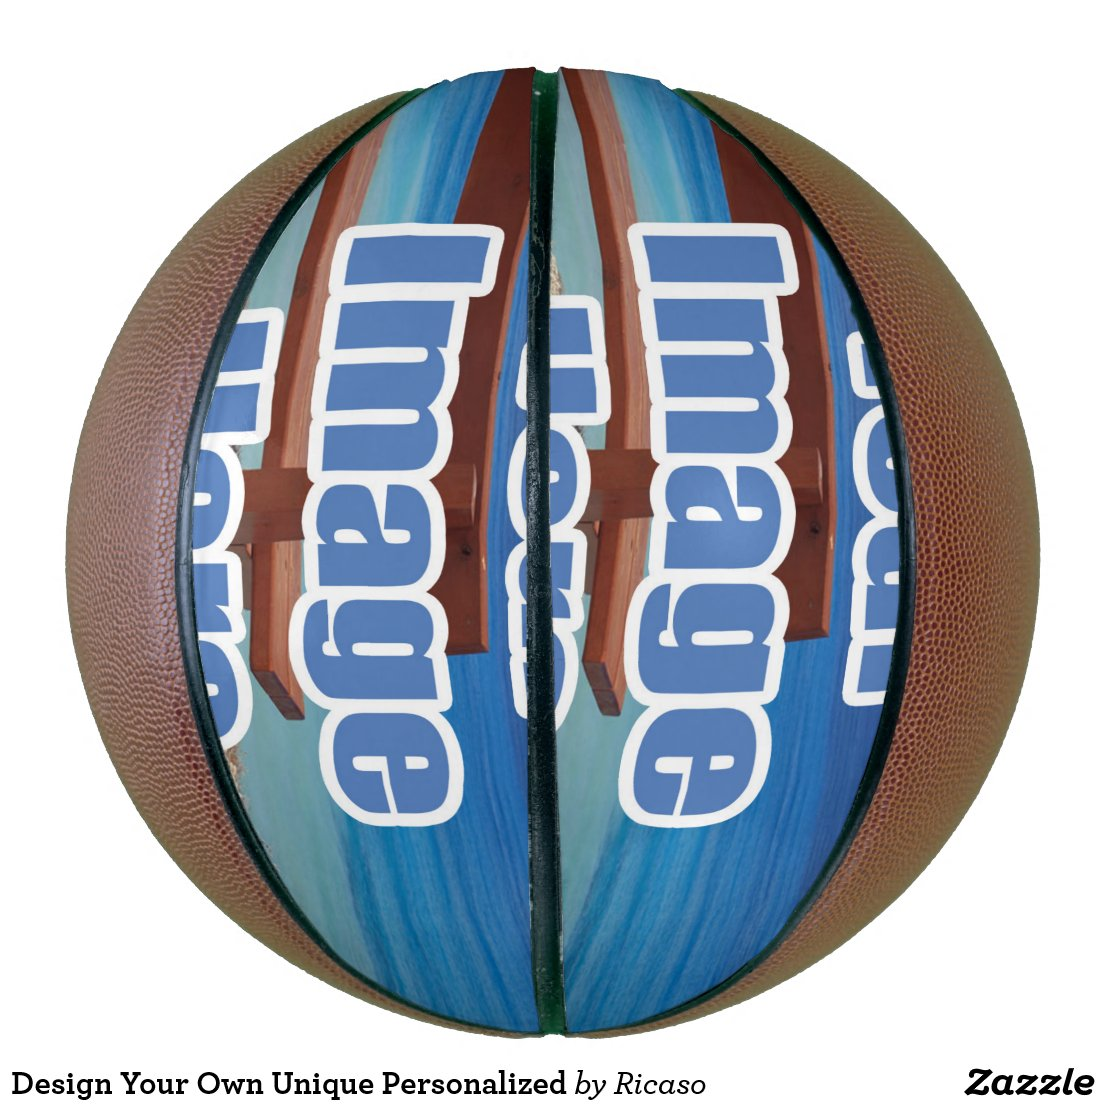 Design Your Own Unique Personalized Basketball